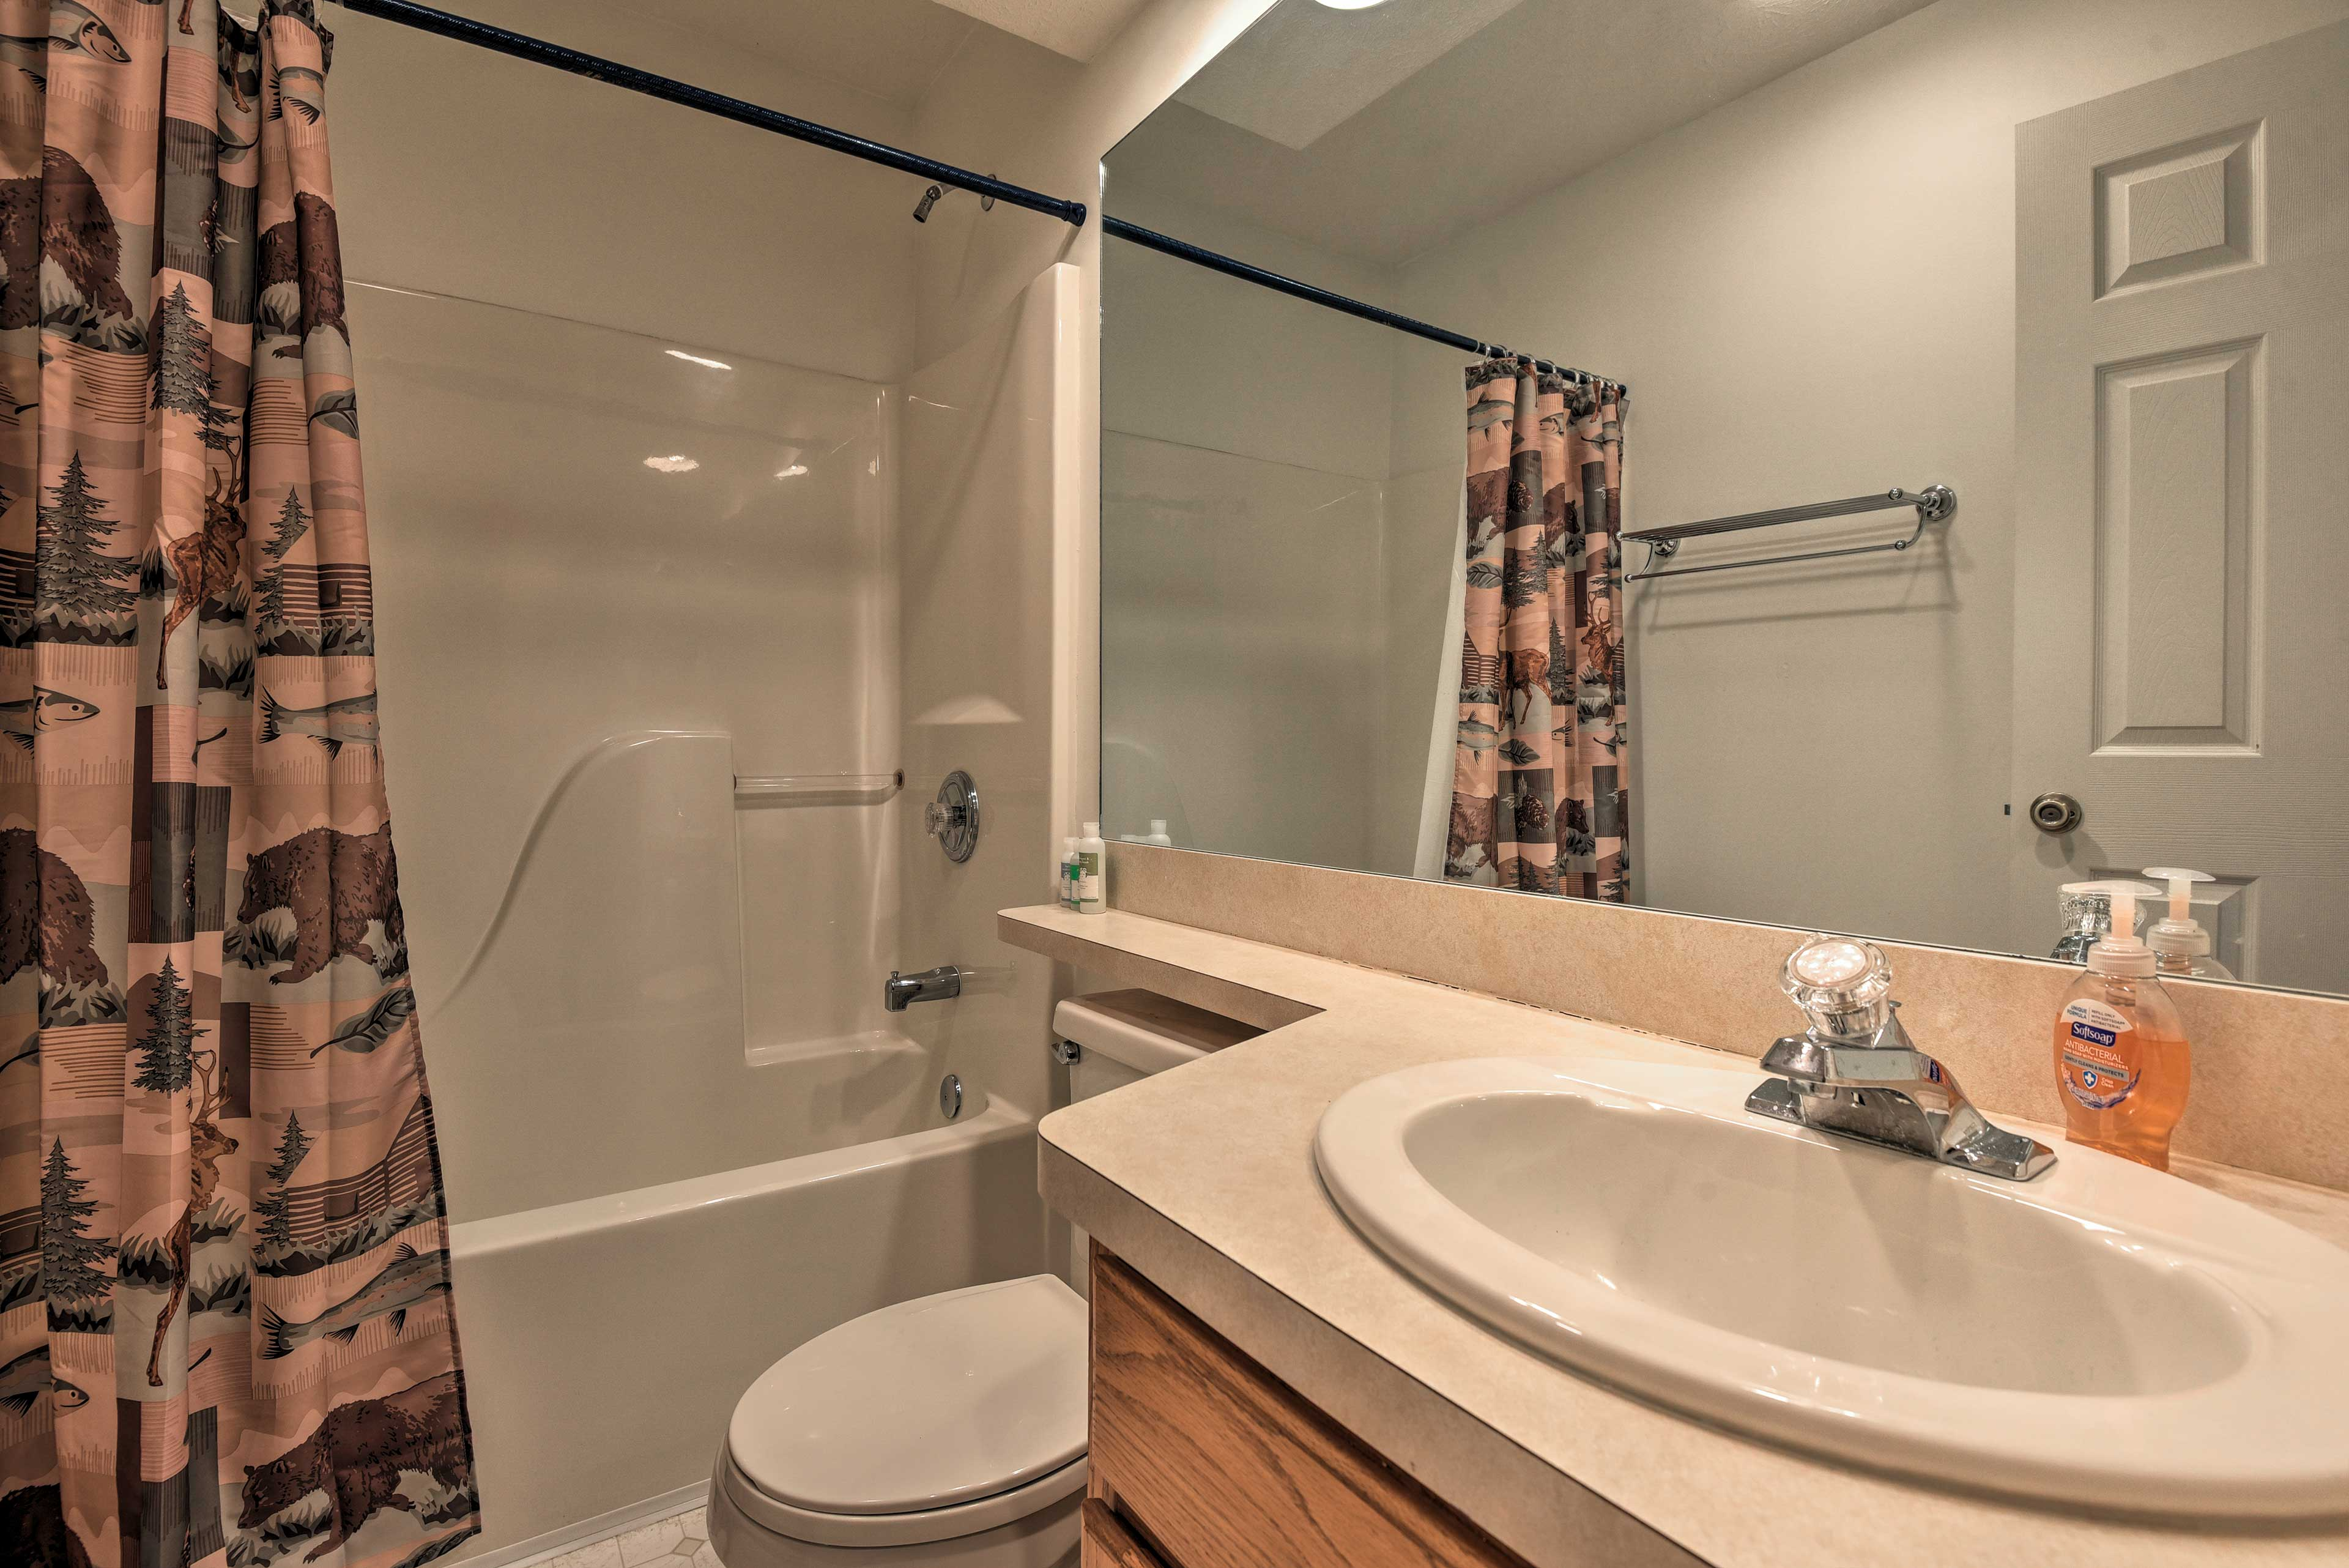 A second full bathroom provides additional space to get ready for the day!